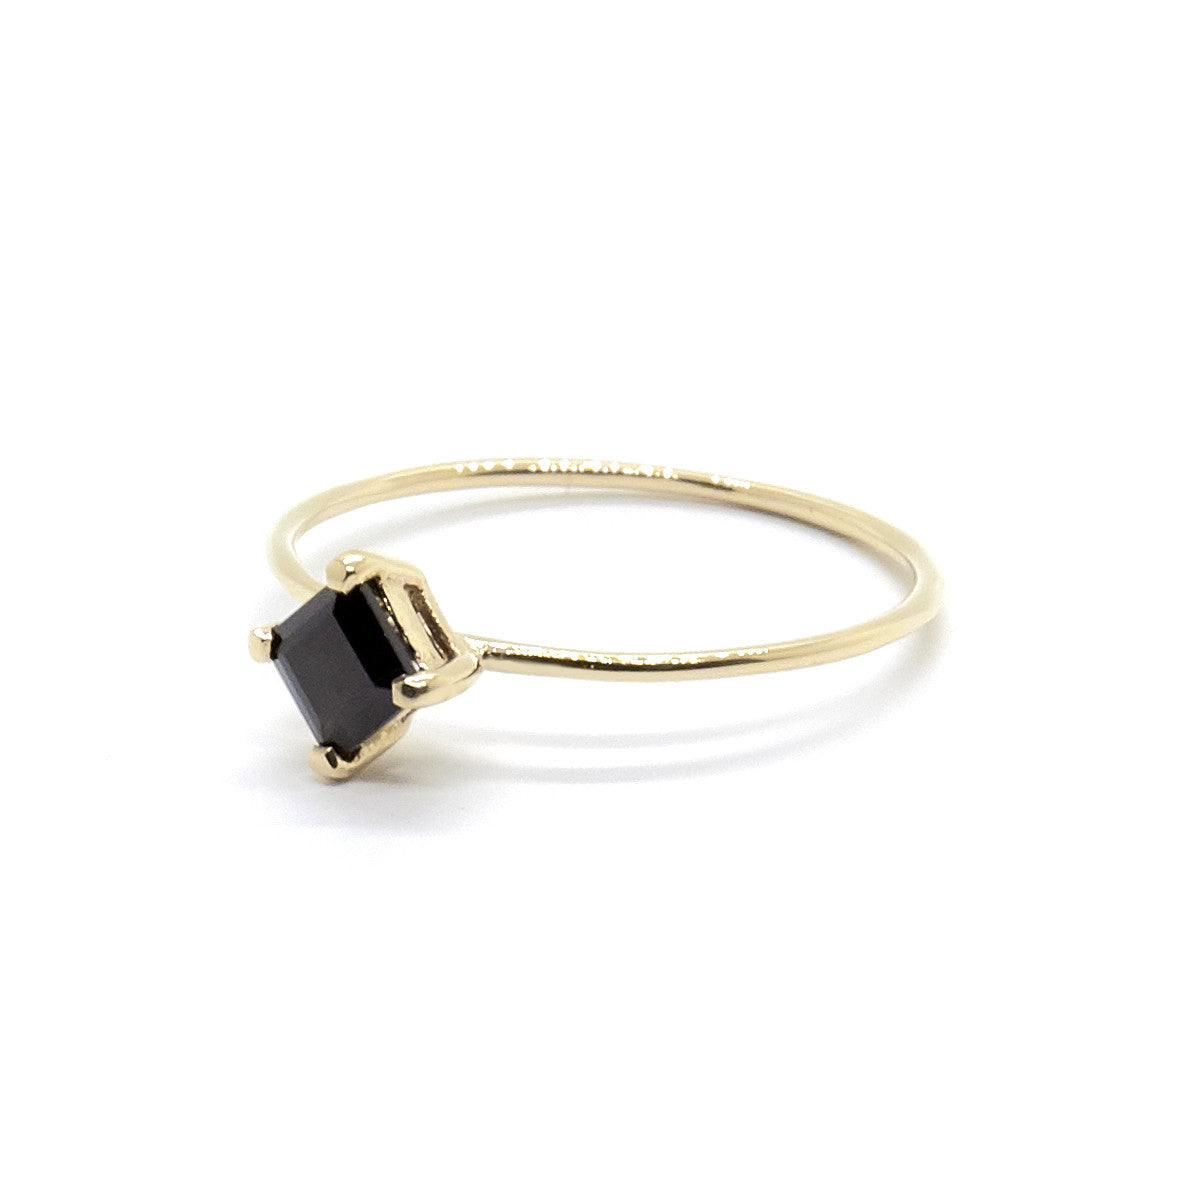 Tiny Square Ring with Black Spinel